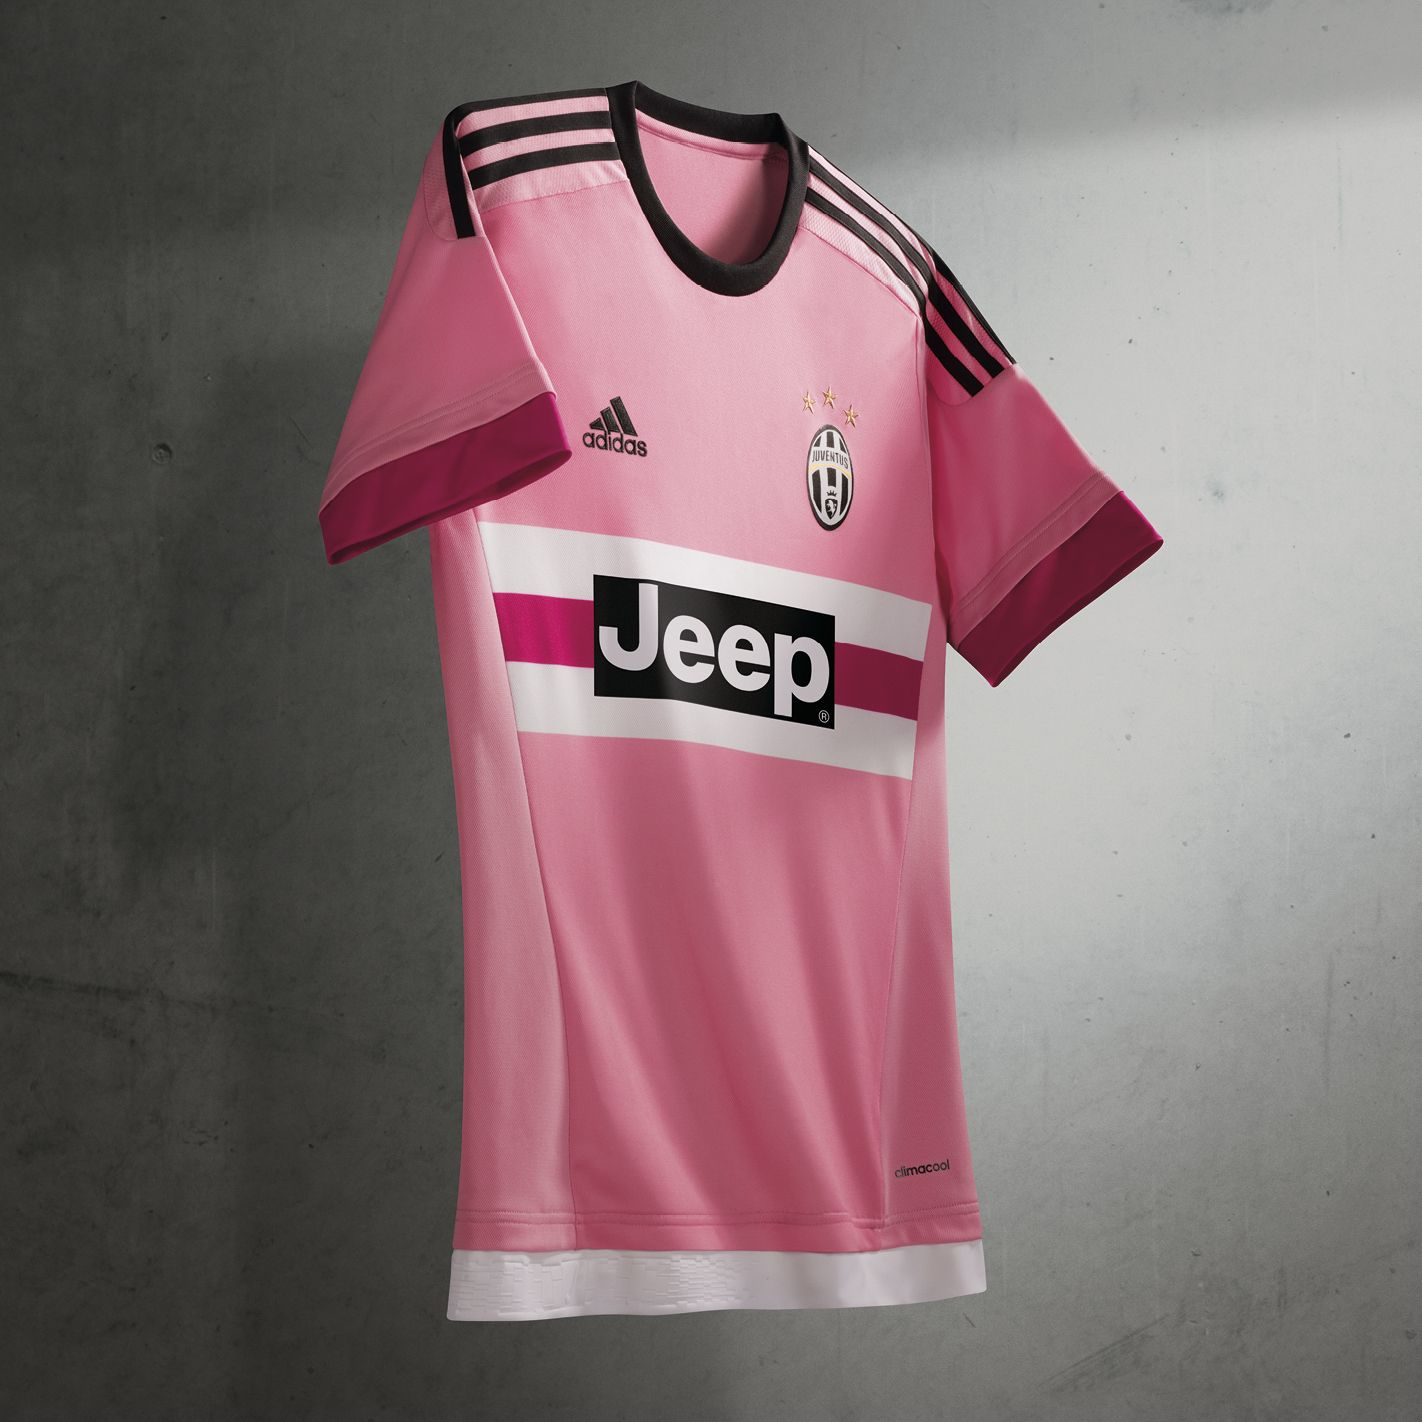 cheaper e53b8 49746 2015/16 Juventus/Adidas Away Jersey! | On the Pitch ...